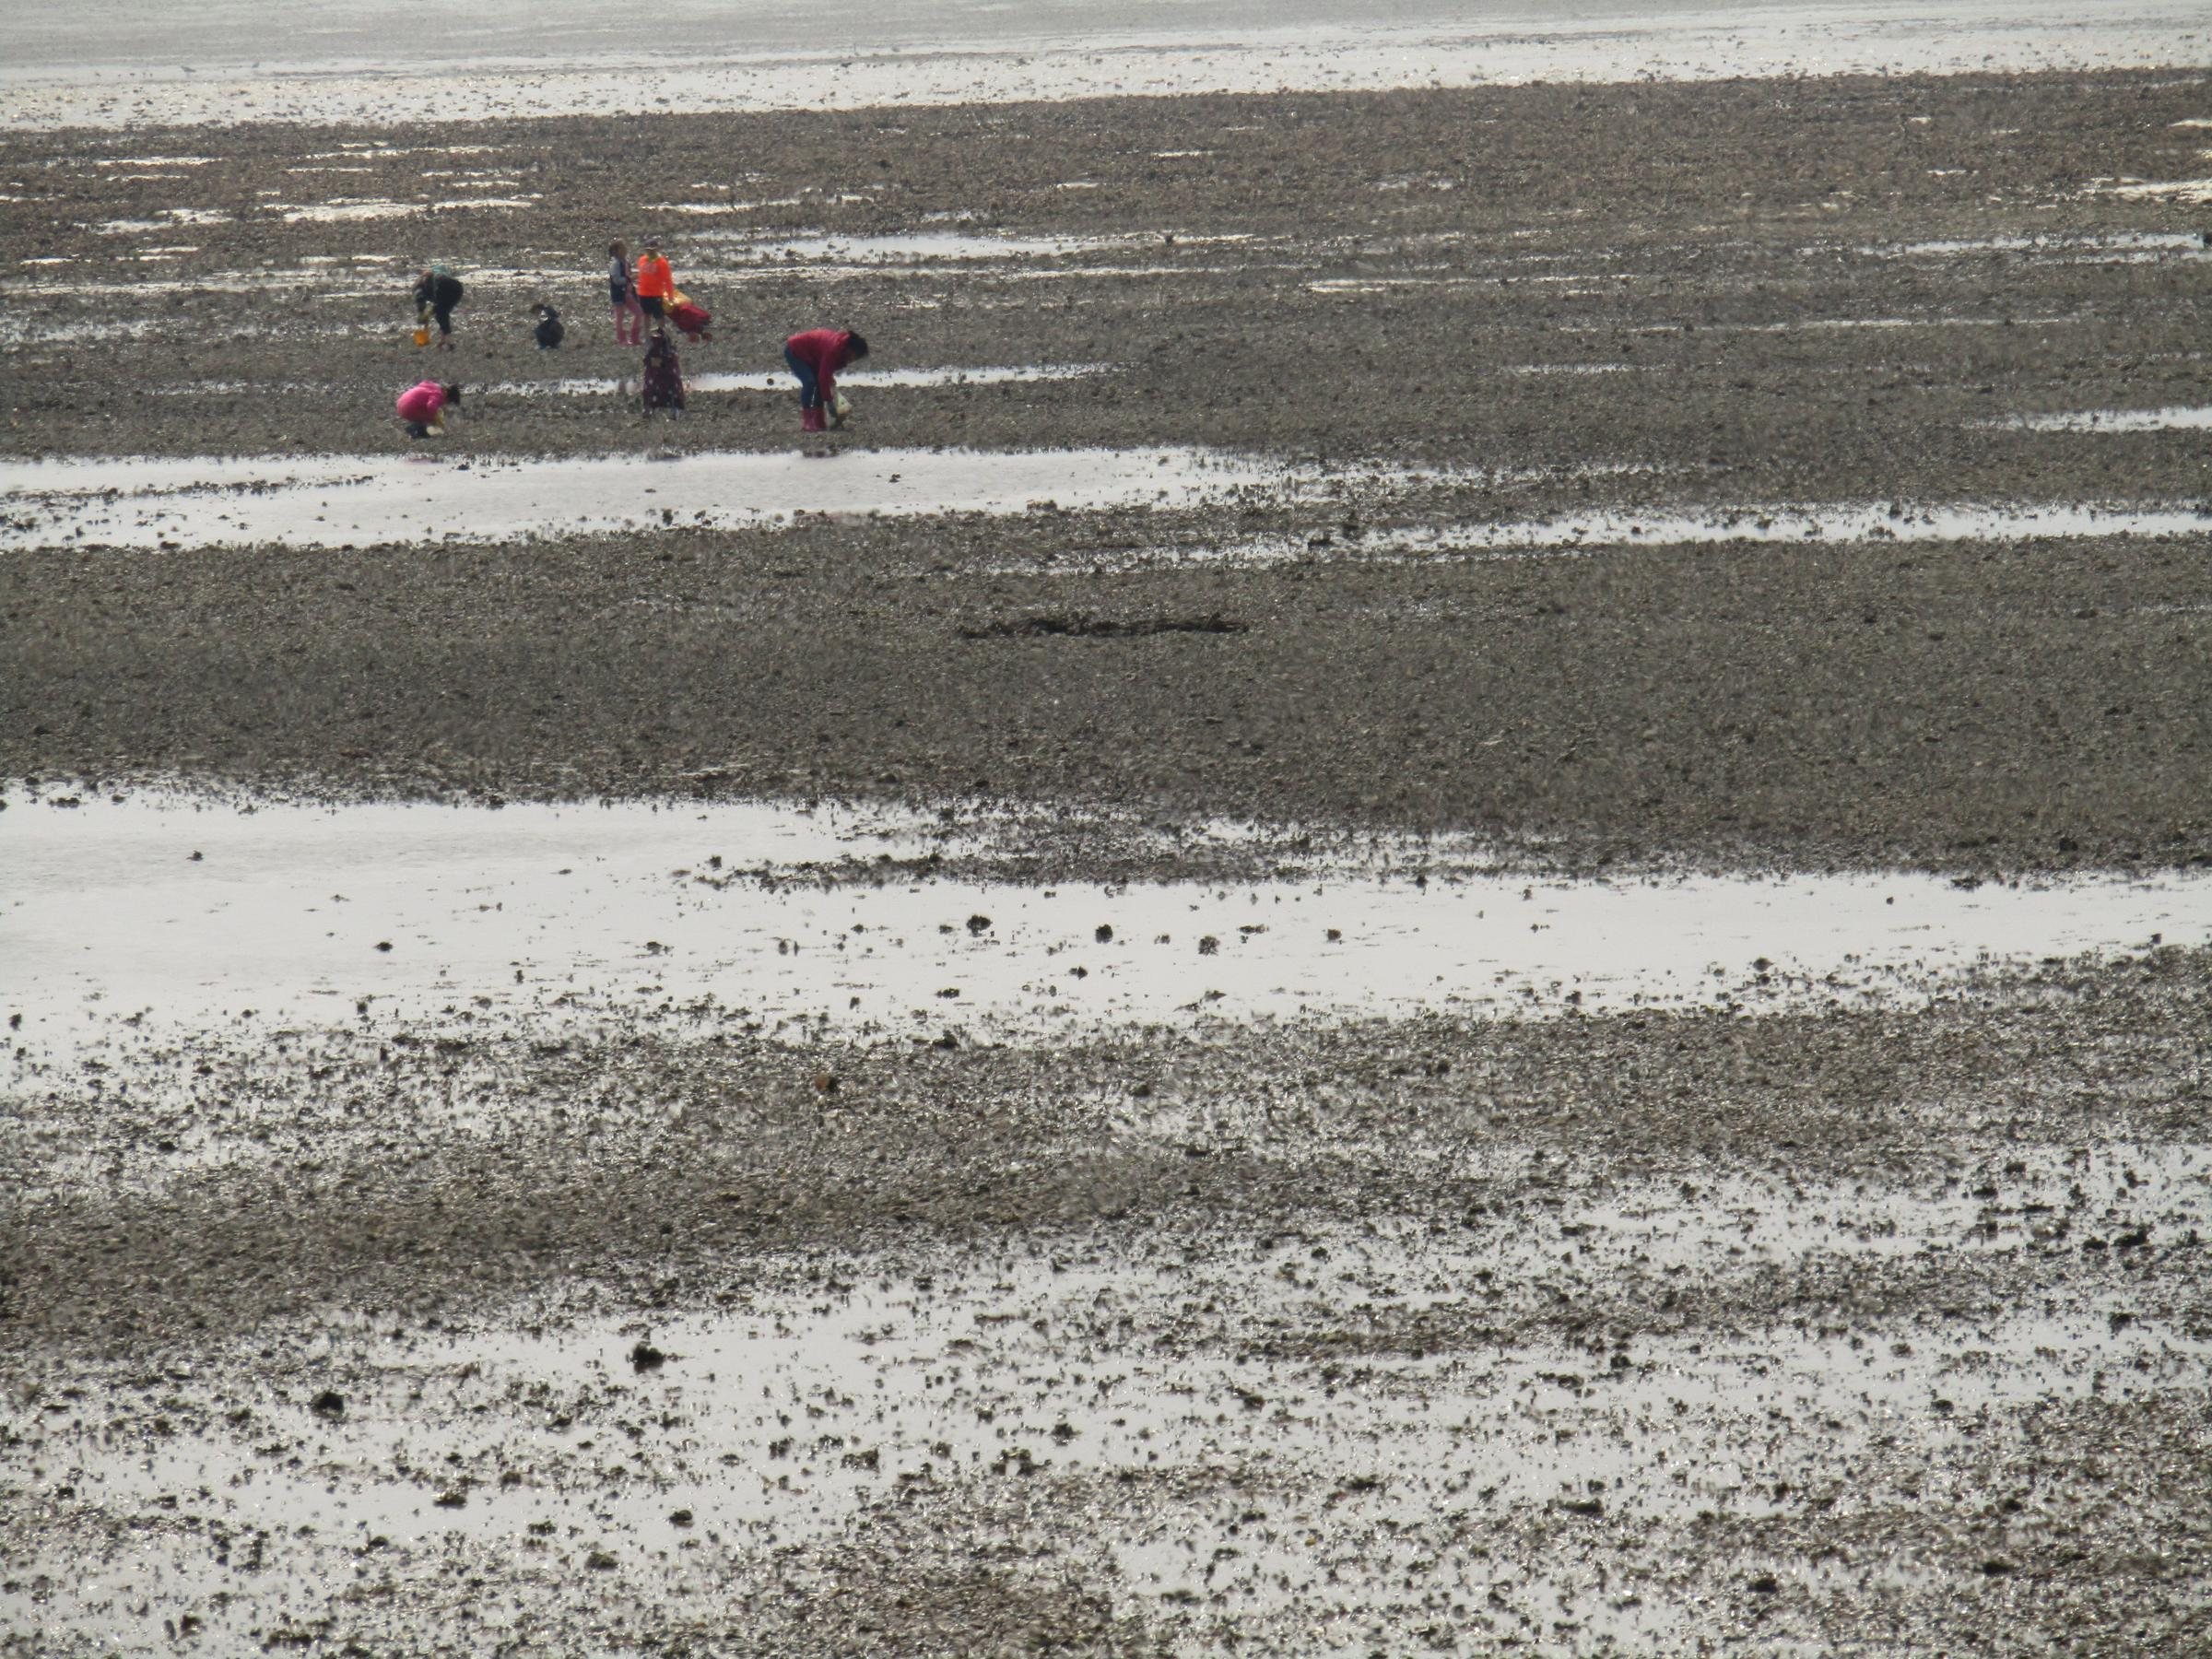 Concerns as big group seen harvesting shellfish illegally